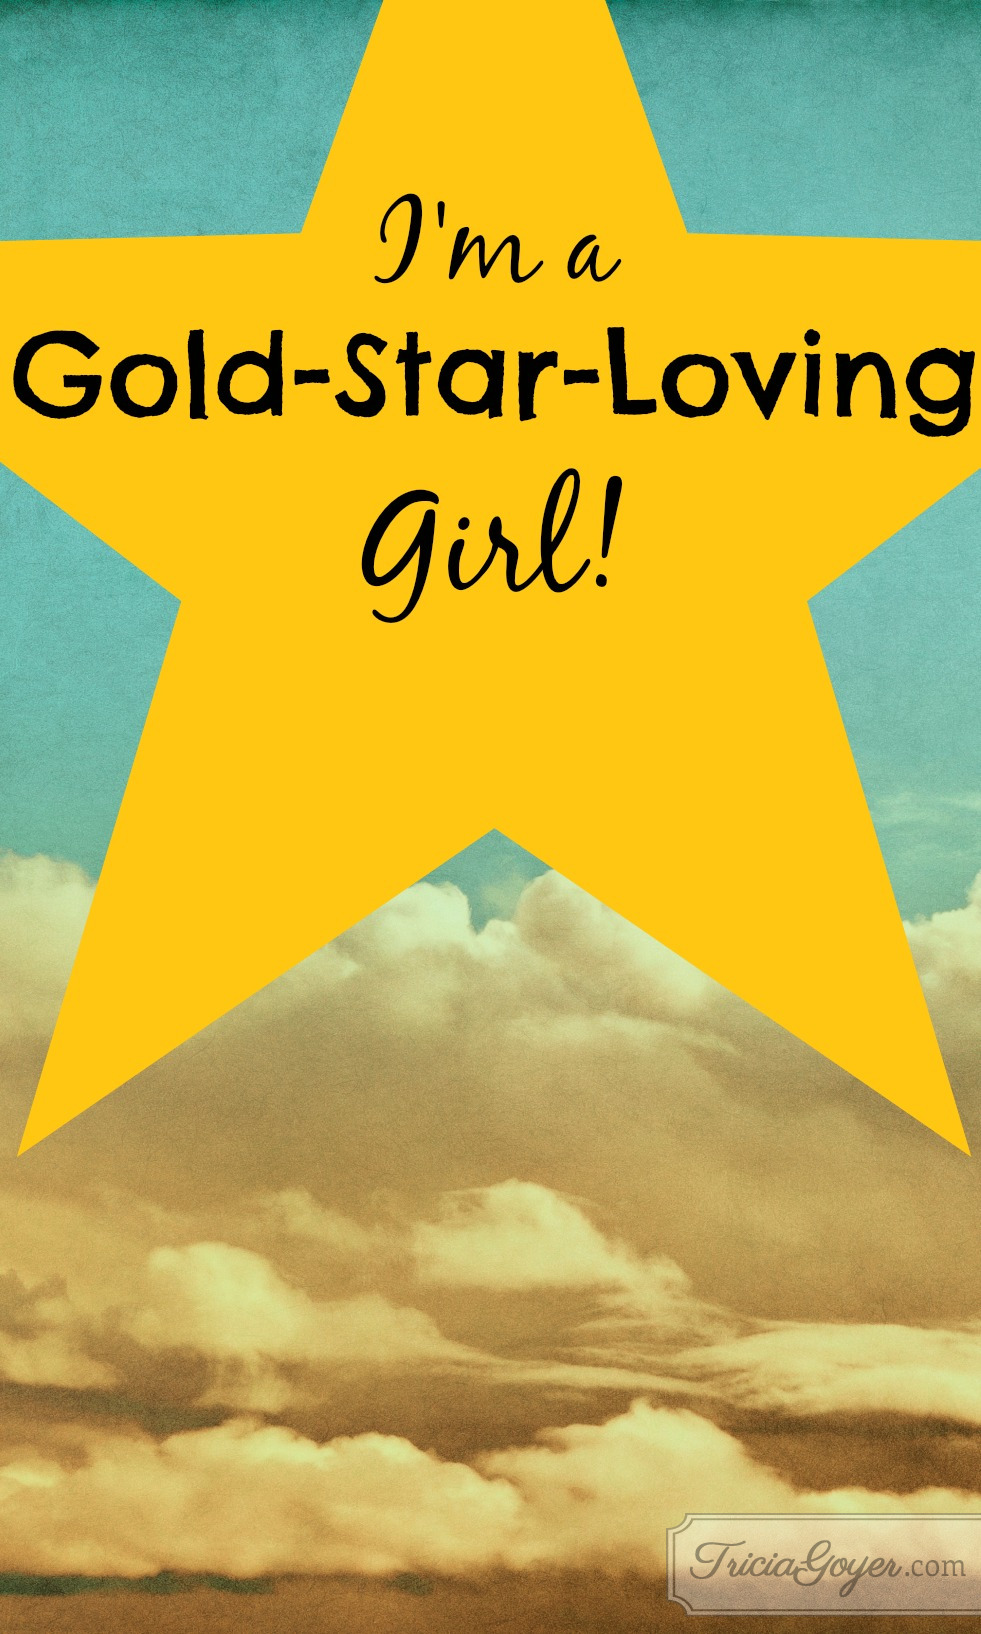 I'm a Gold-Star-Loving Girl!